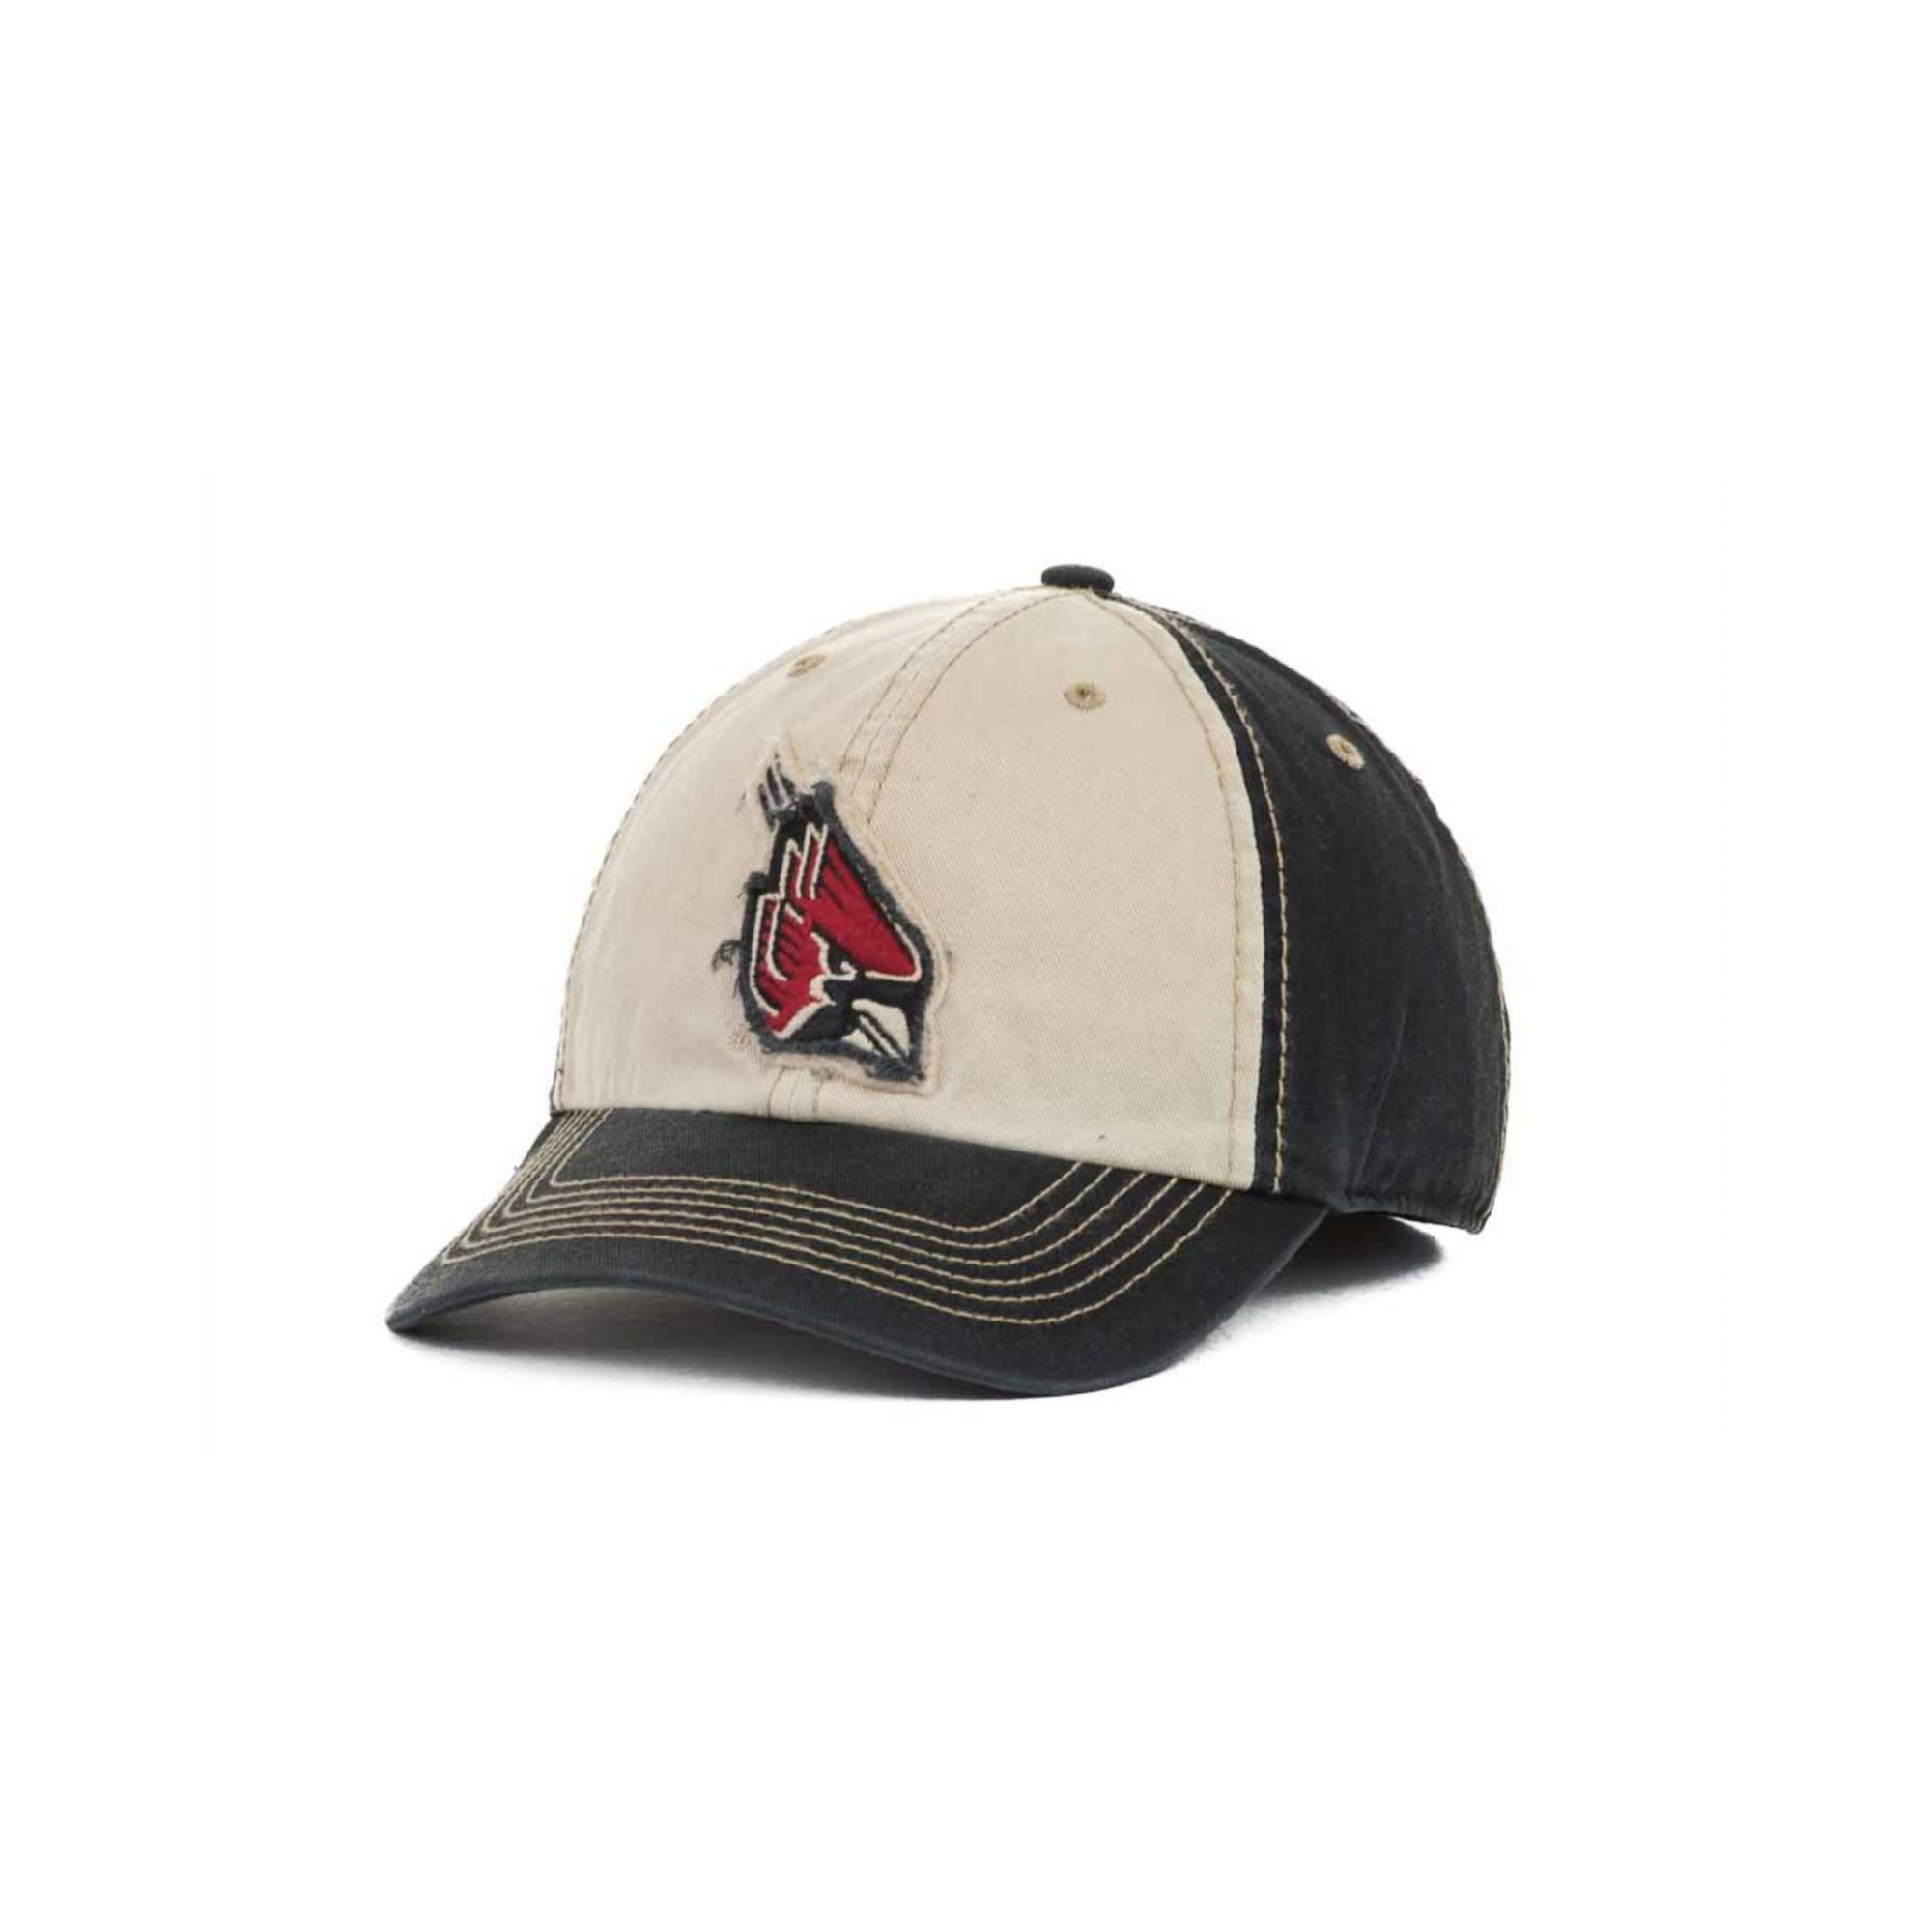 Lyst - 47 Brand Ball State Cardinals Ncaa Sandlot Franchise Cap in ... 95a297f19bd5